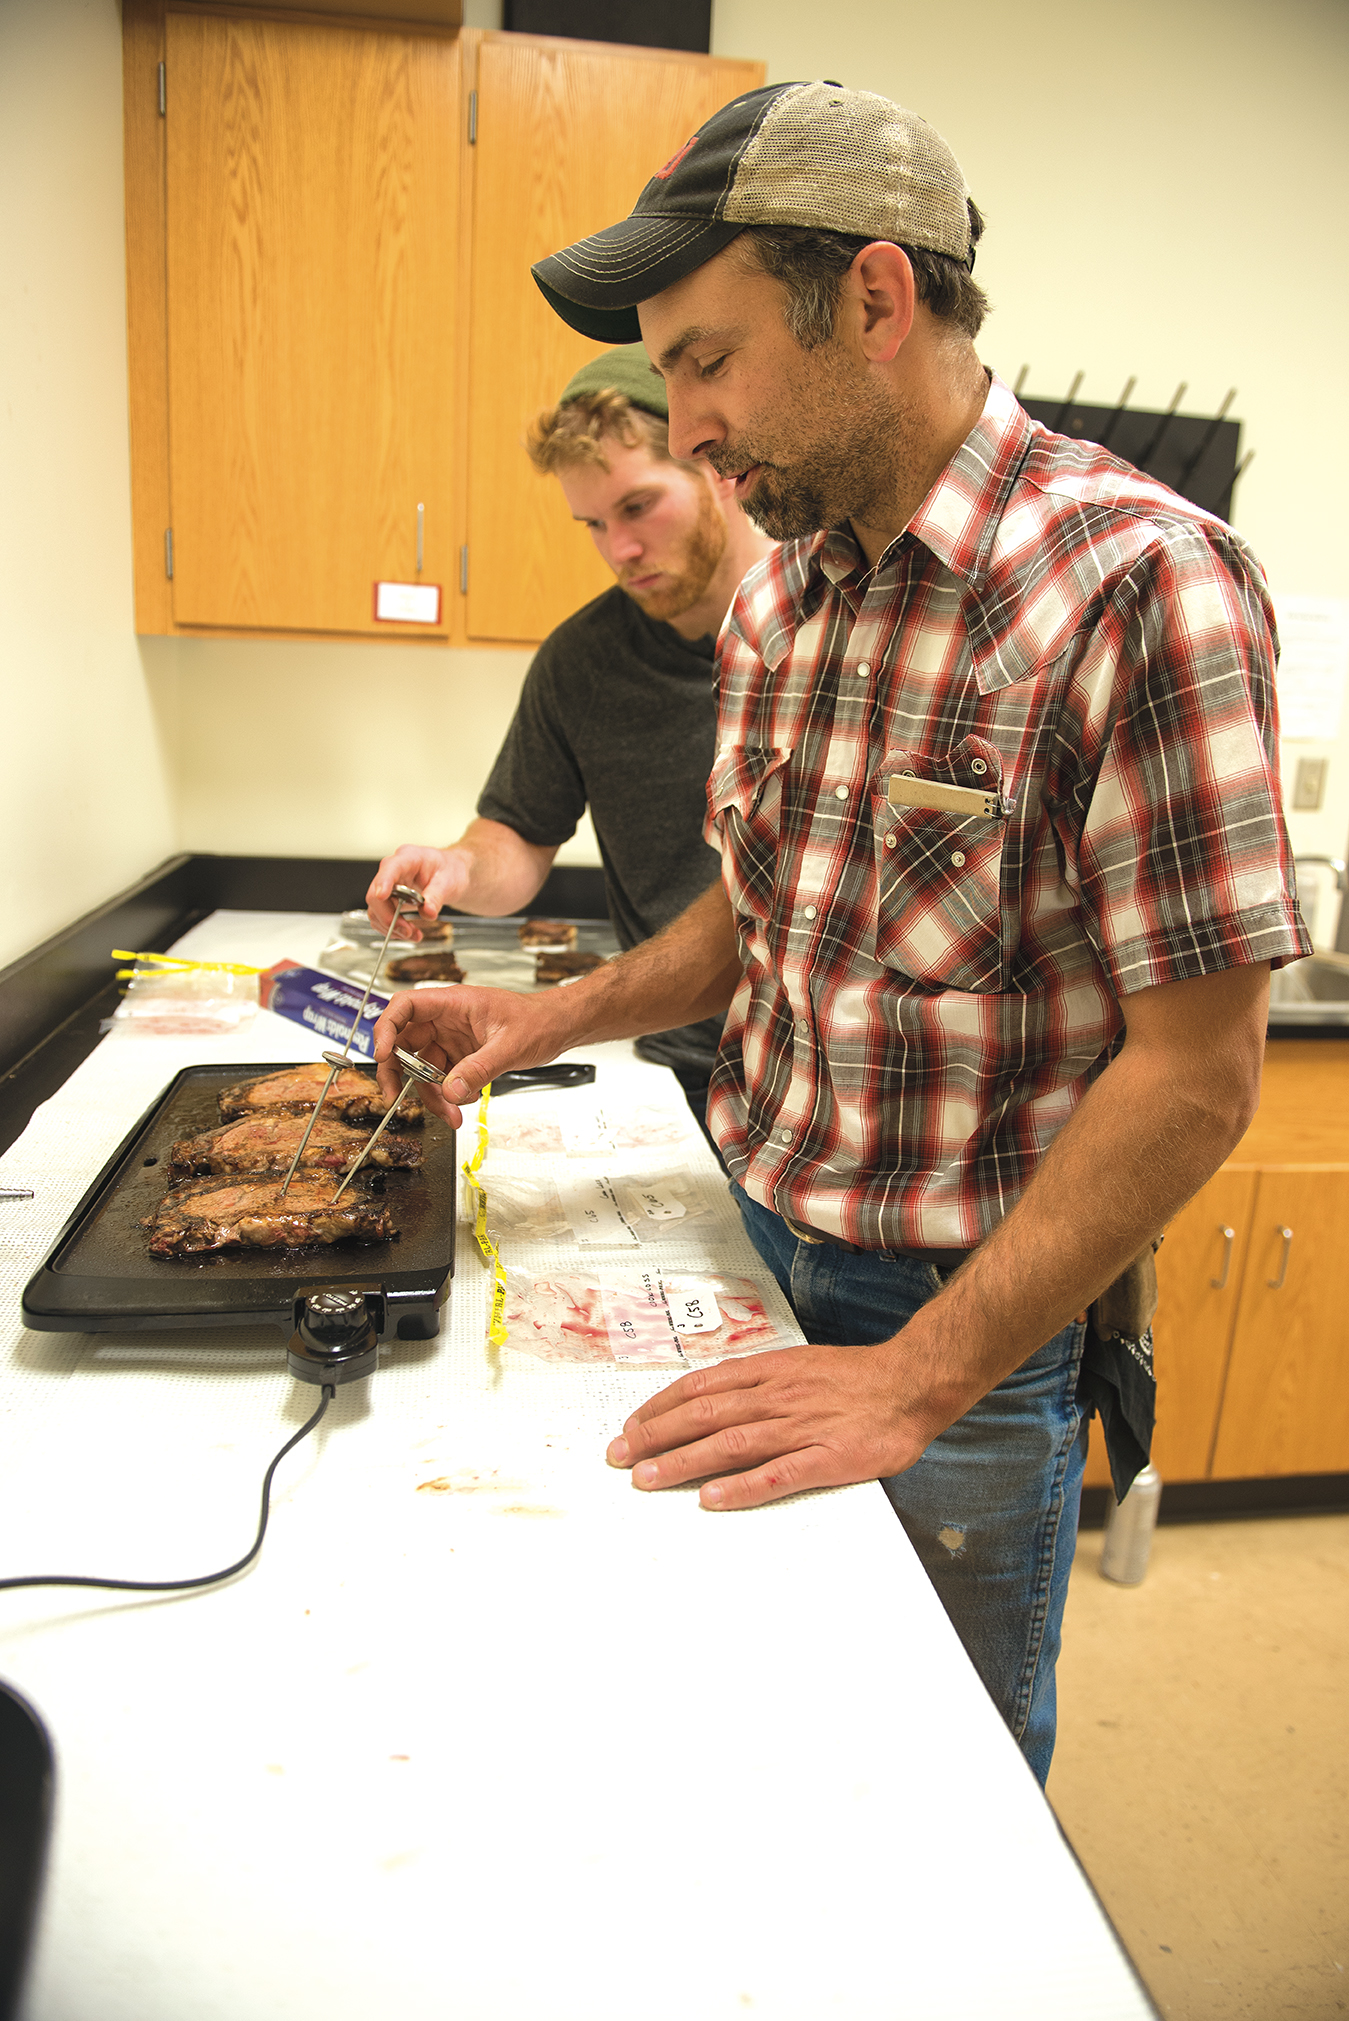 Rickard and Parmenter cook the steaks in order to see how well they retained their juiciness. The researchers then cut cores from the steaks and placed them into a Warner-Bratzler shear force device to test the meat's tenderness.